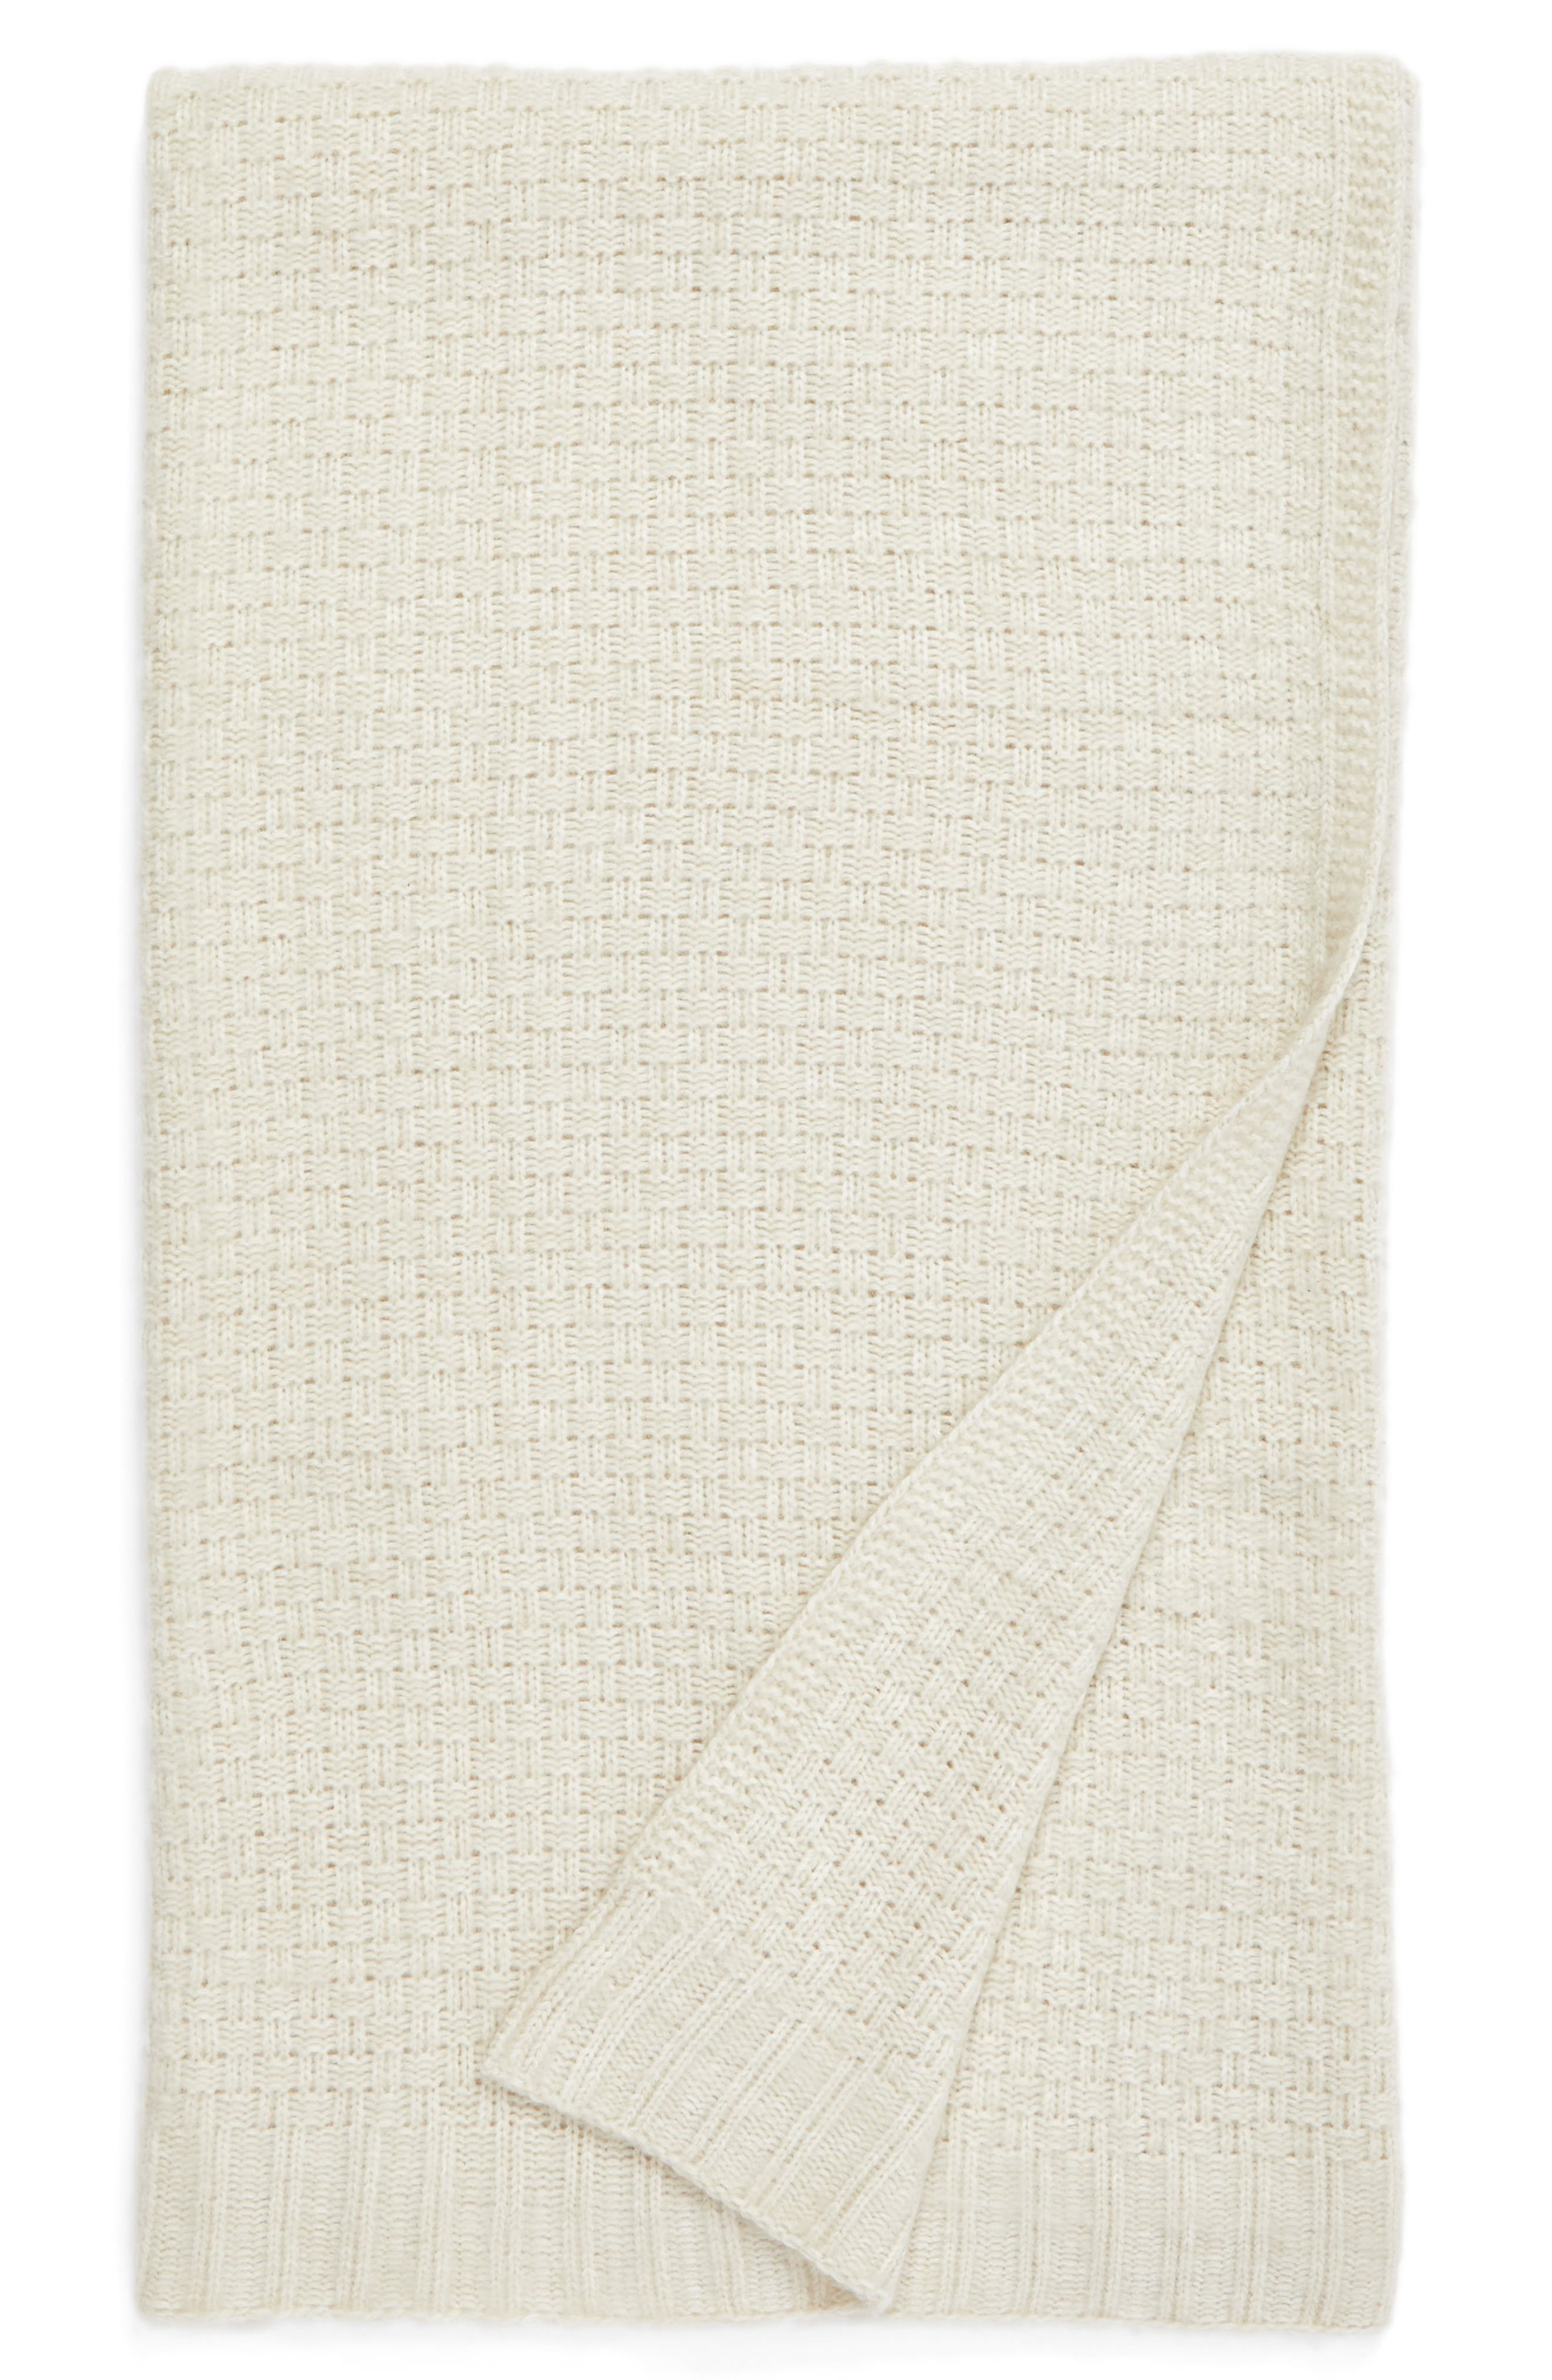 Main Image - Nordstrom at Home Brushed Seed Stitch Throw Blanket